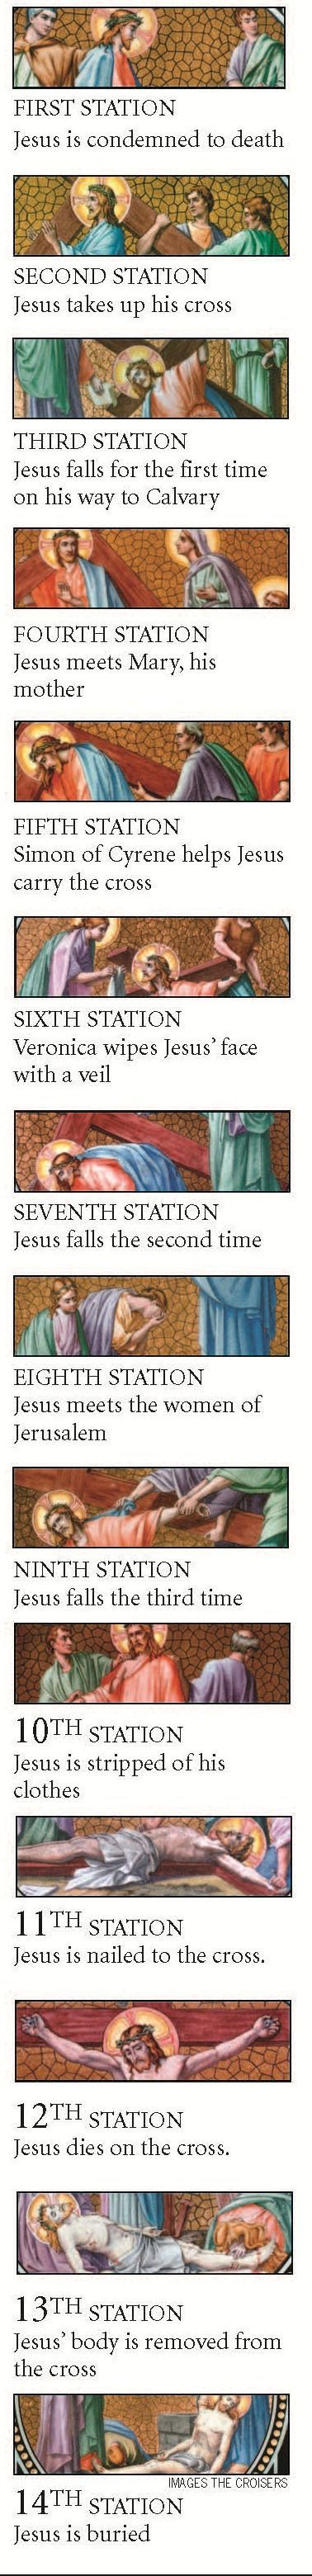 Via Dolorosa: The Stations of the Cross